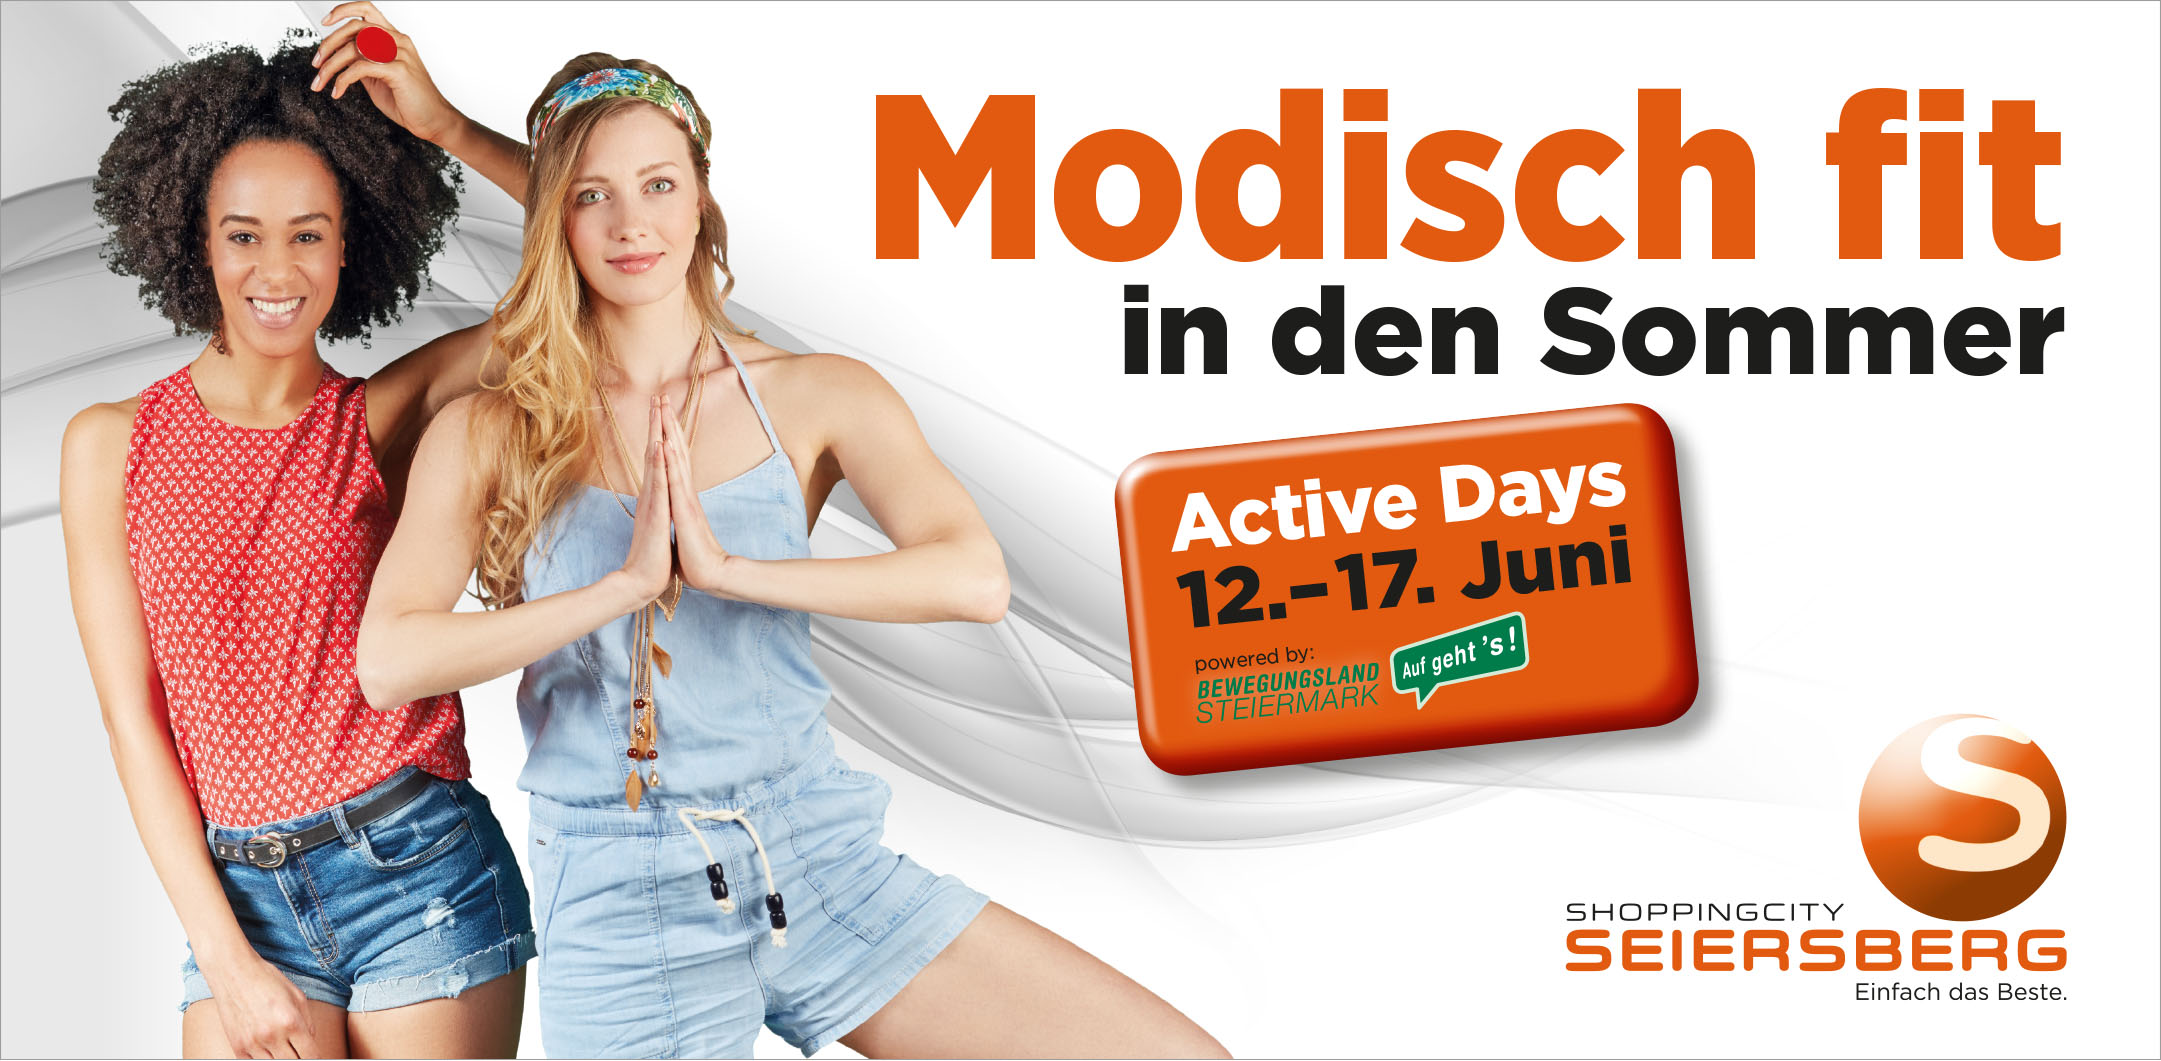 SC-Seiersberg-Image-Active-Days-Modisch-fit